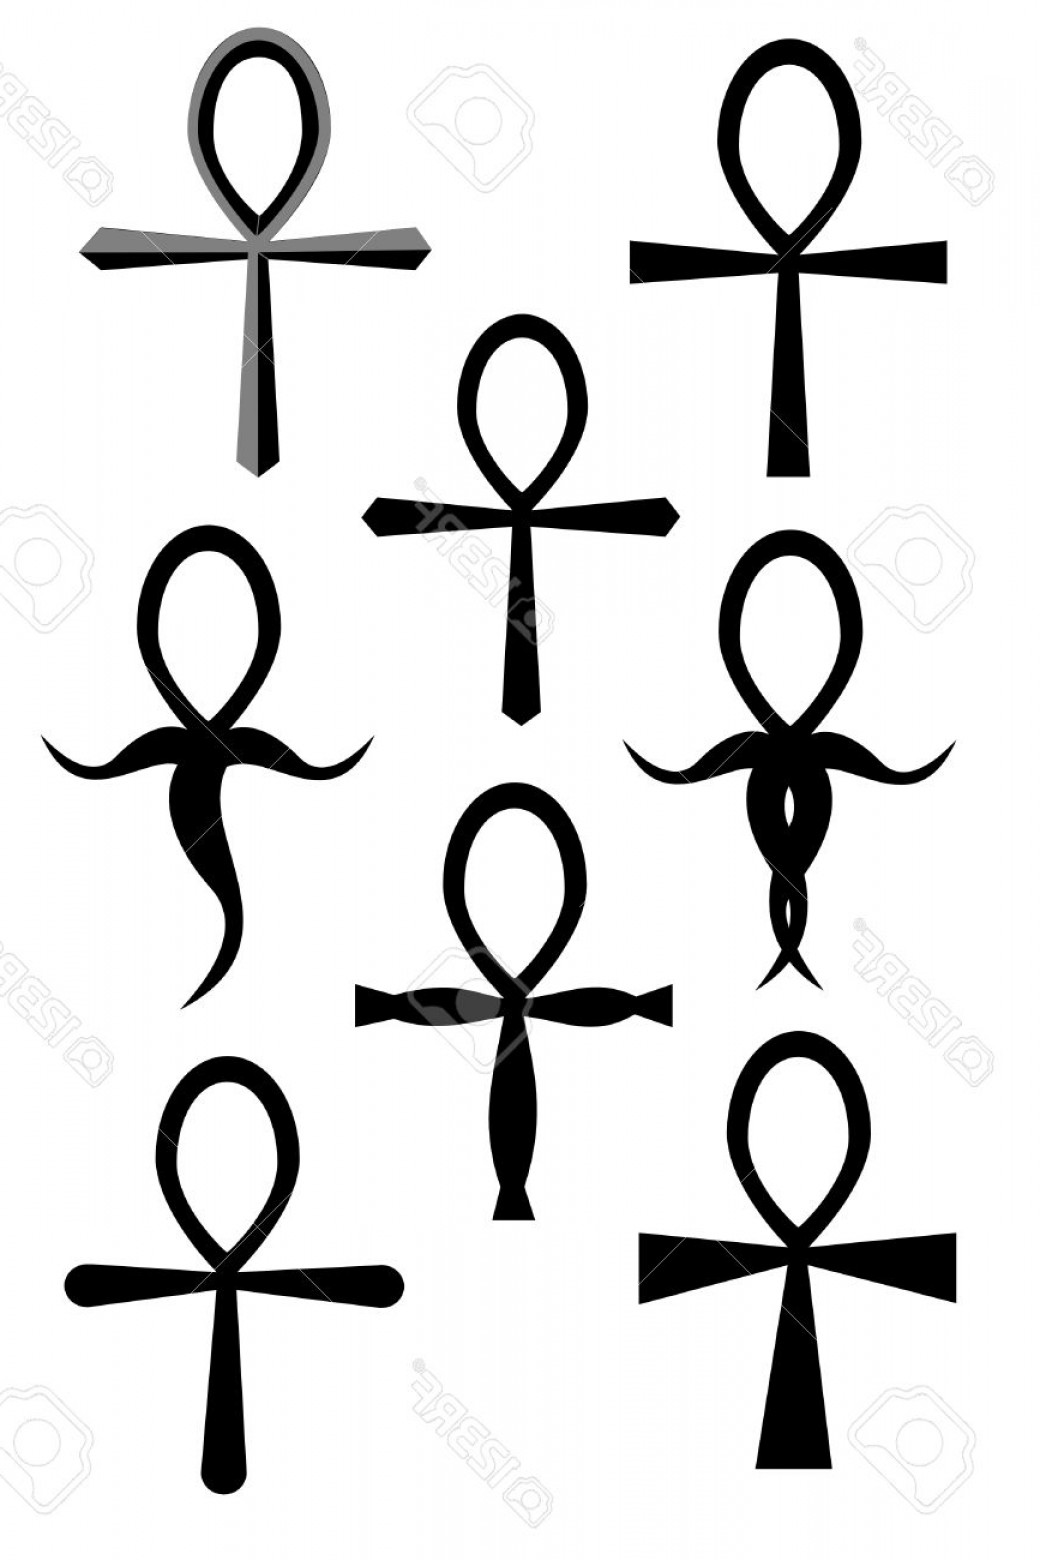 1040x1560 Gothic Ankh Vector Drawing Arenawp